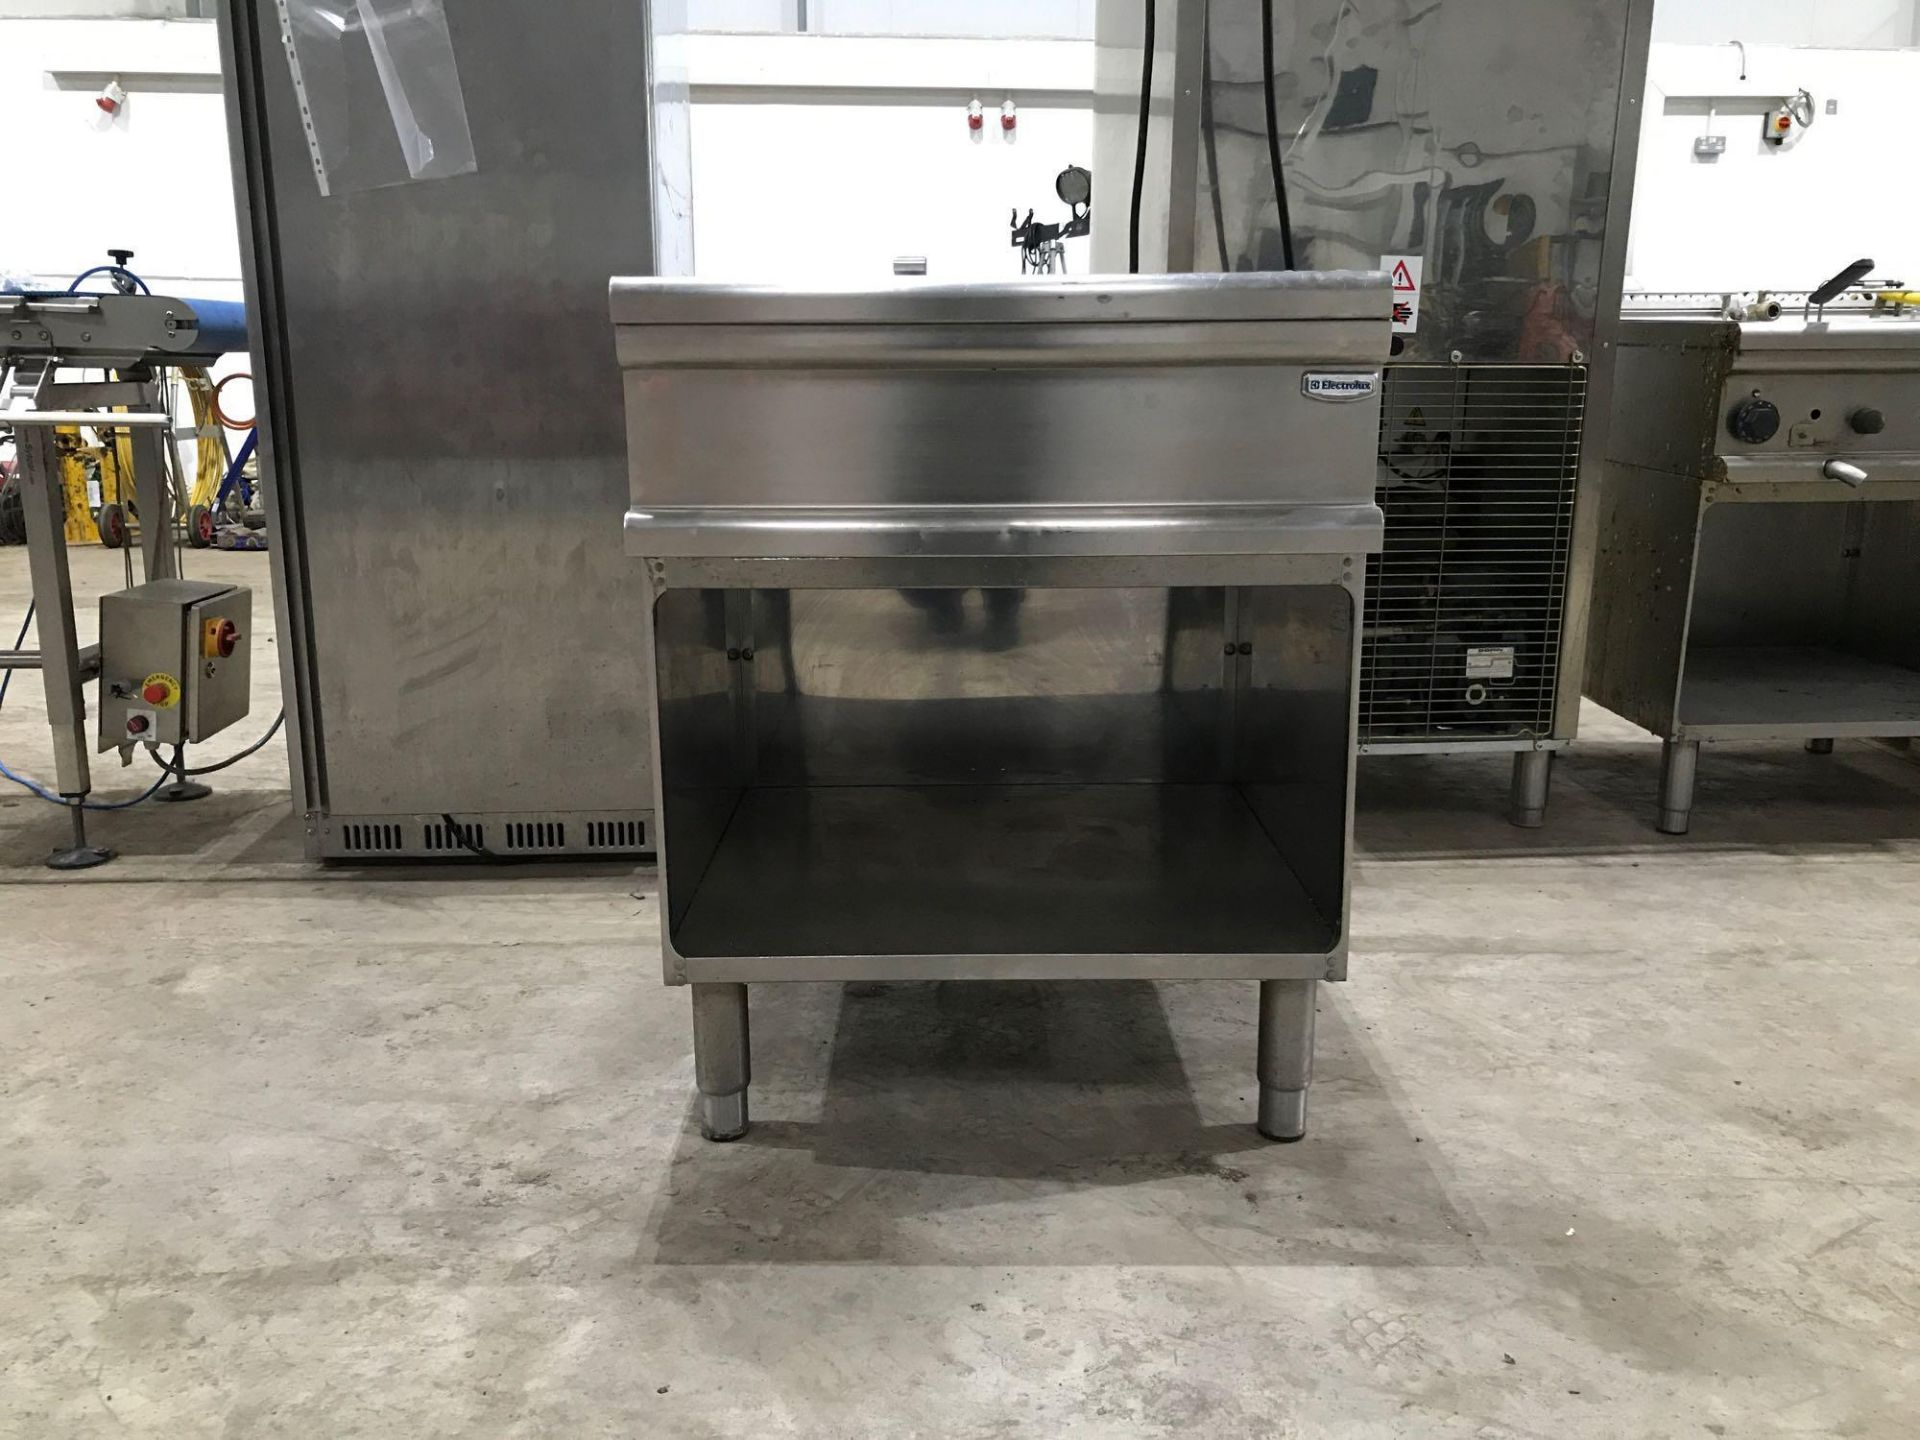 Lot 181 - Electrolux stainless steel counter